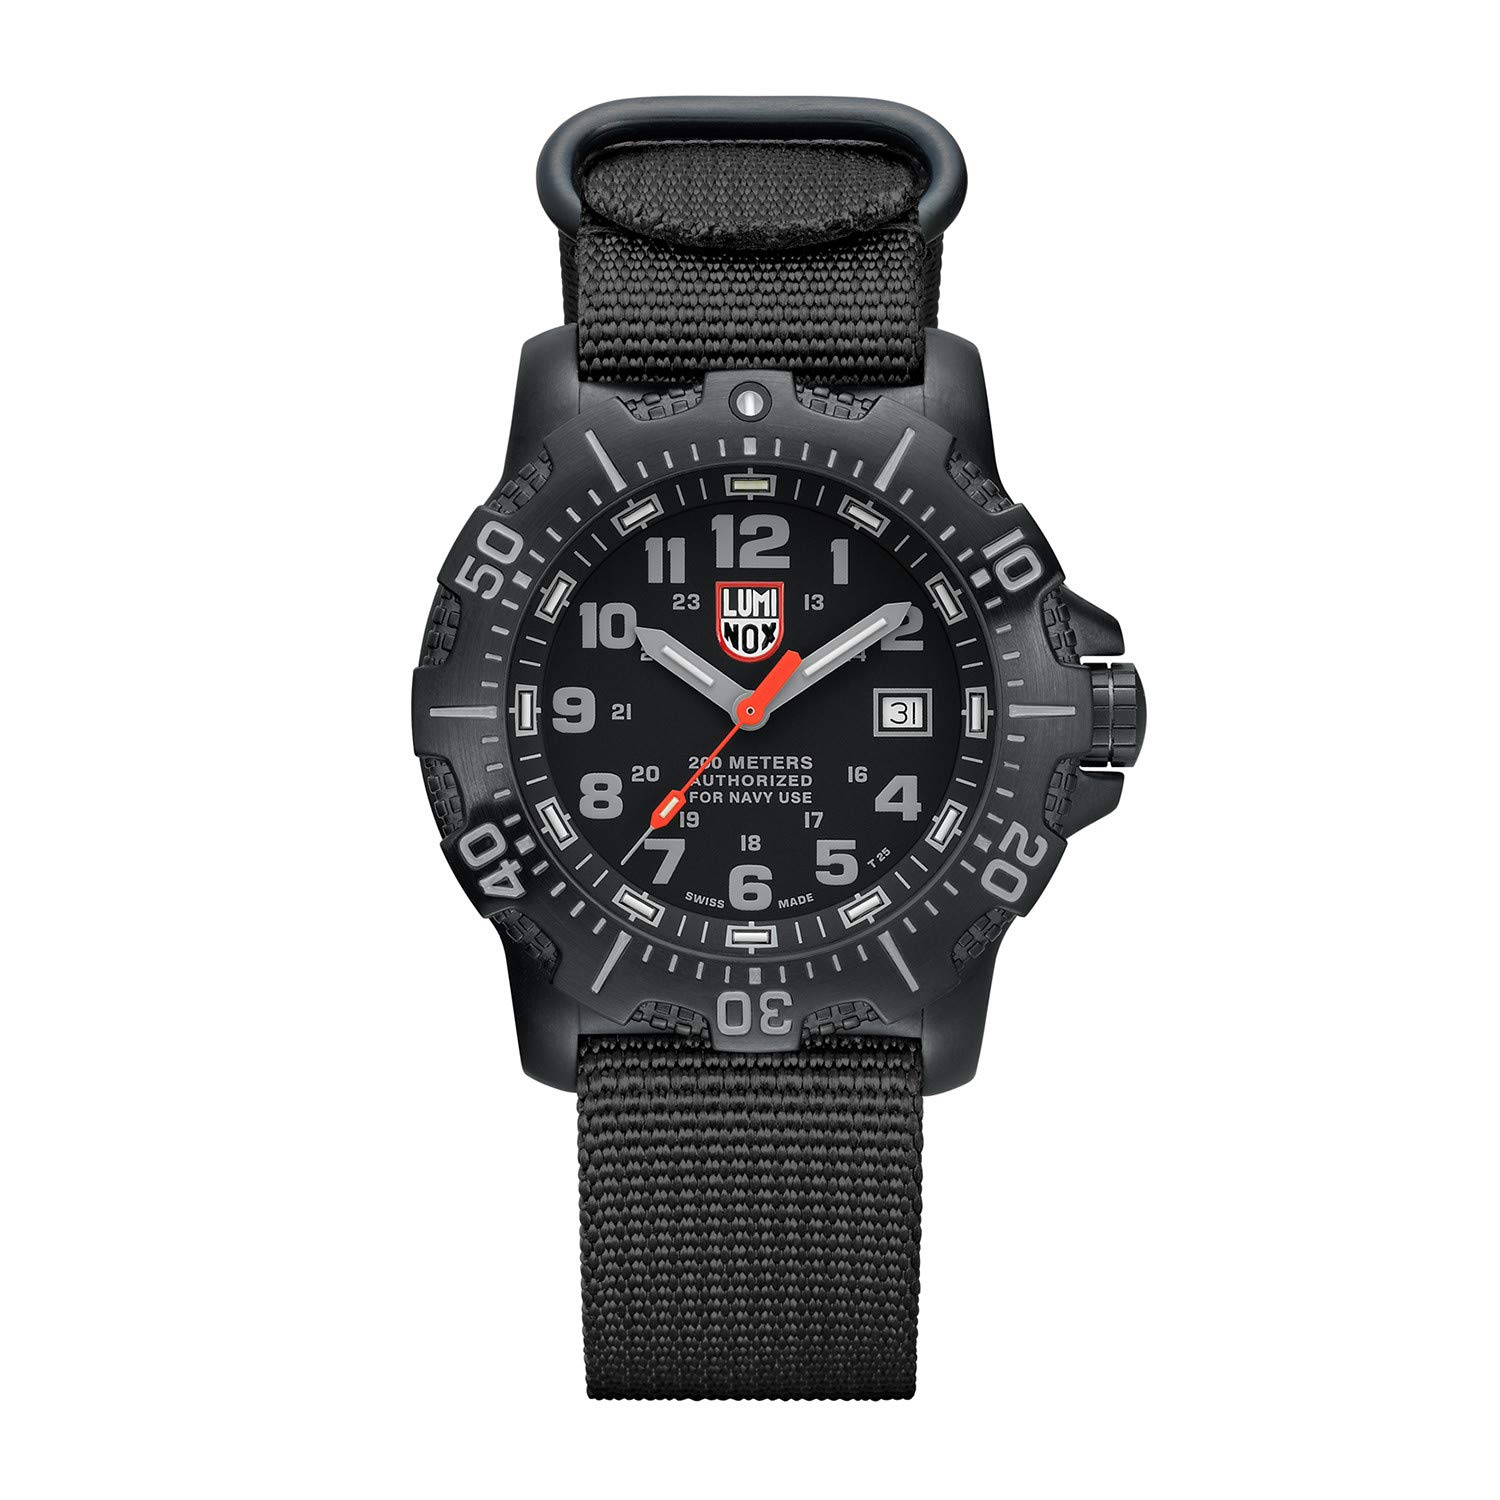 Luminox Divers Mens Watch in Black A.N.U. (Authorized for Navy Use) (XS.4221/4200 Series) - 200m Waterproof Stainless Steel Case Antireflective Sapphire Crystal by Luminox